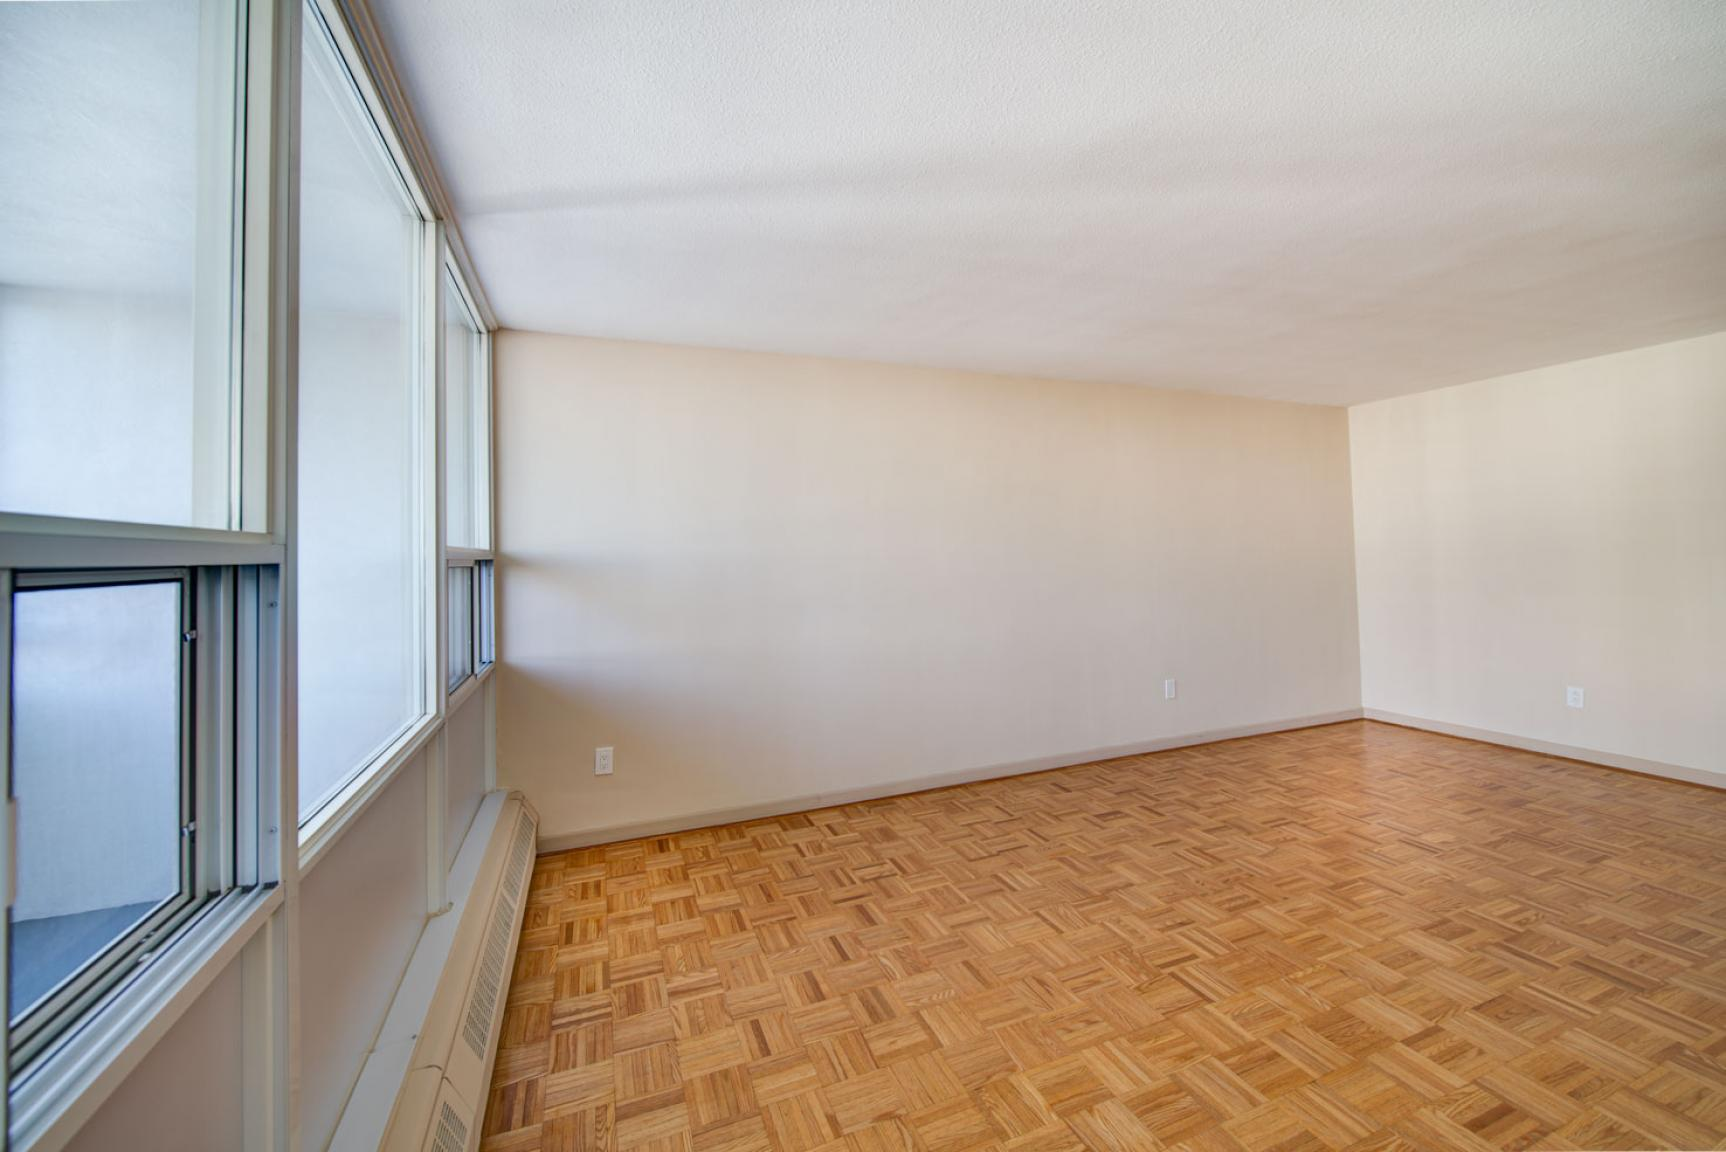 1 bedroom Apartments for rent in Toronto at Holly Tower - Photo 09 - RentersPages – L399824